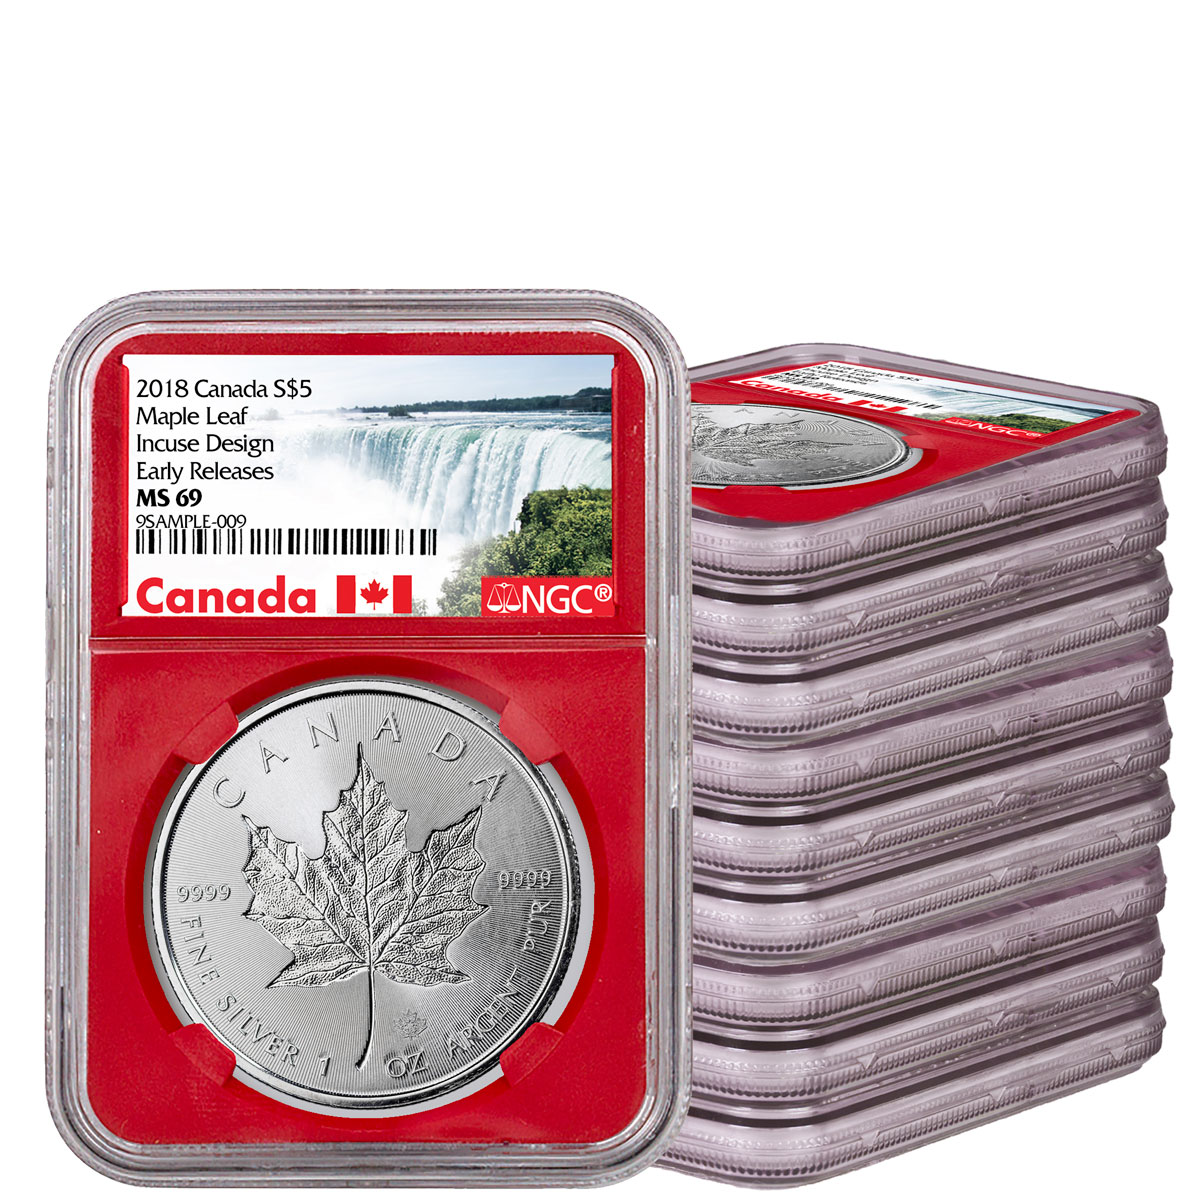 Group of 9 + 1 Free Coin - 2018 Canada 1 oz Silver Maple Leaf - Incuse $5 Coins NGC MS69 ER NGC Box Red Core Holder Exclusive Canada Label